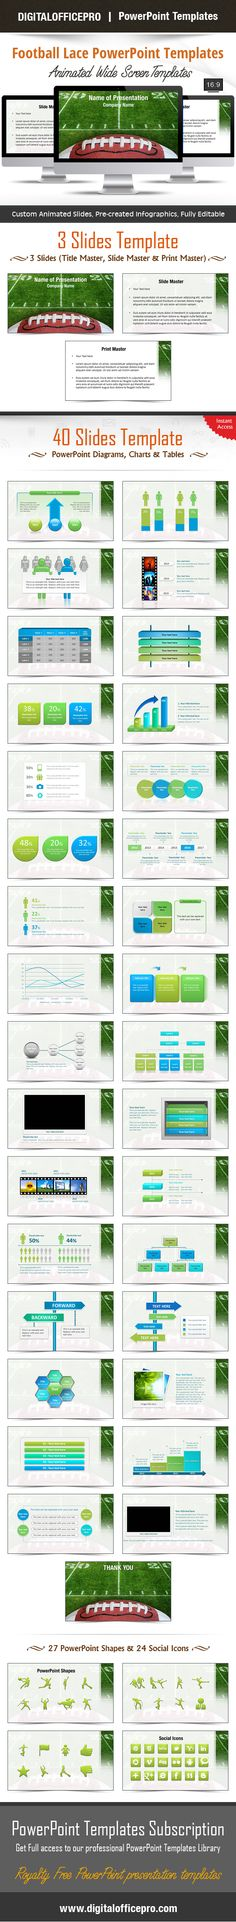 Impress and Engage your audience with Football Lace PowerPoint Template and Football Lace PowerPoint Backgrounds from DigitalOfficePro. Each template comes with a set of PowerPoint Diagrams, Charts & Shapes and are available for instant download.